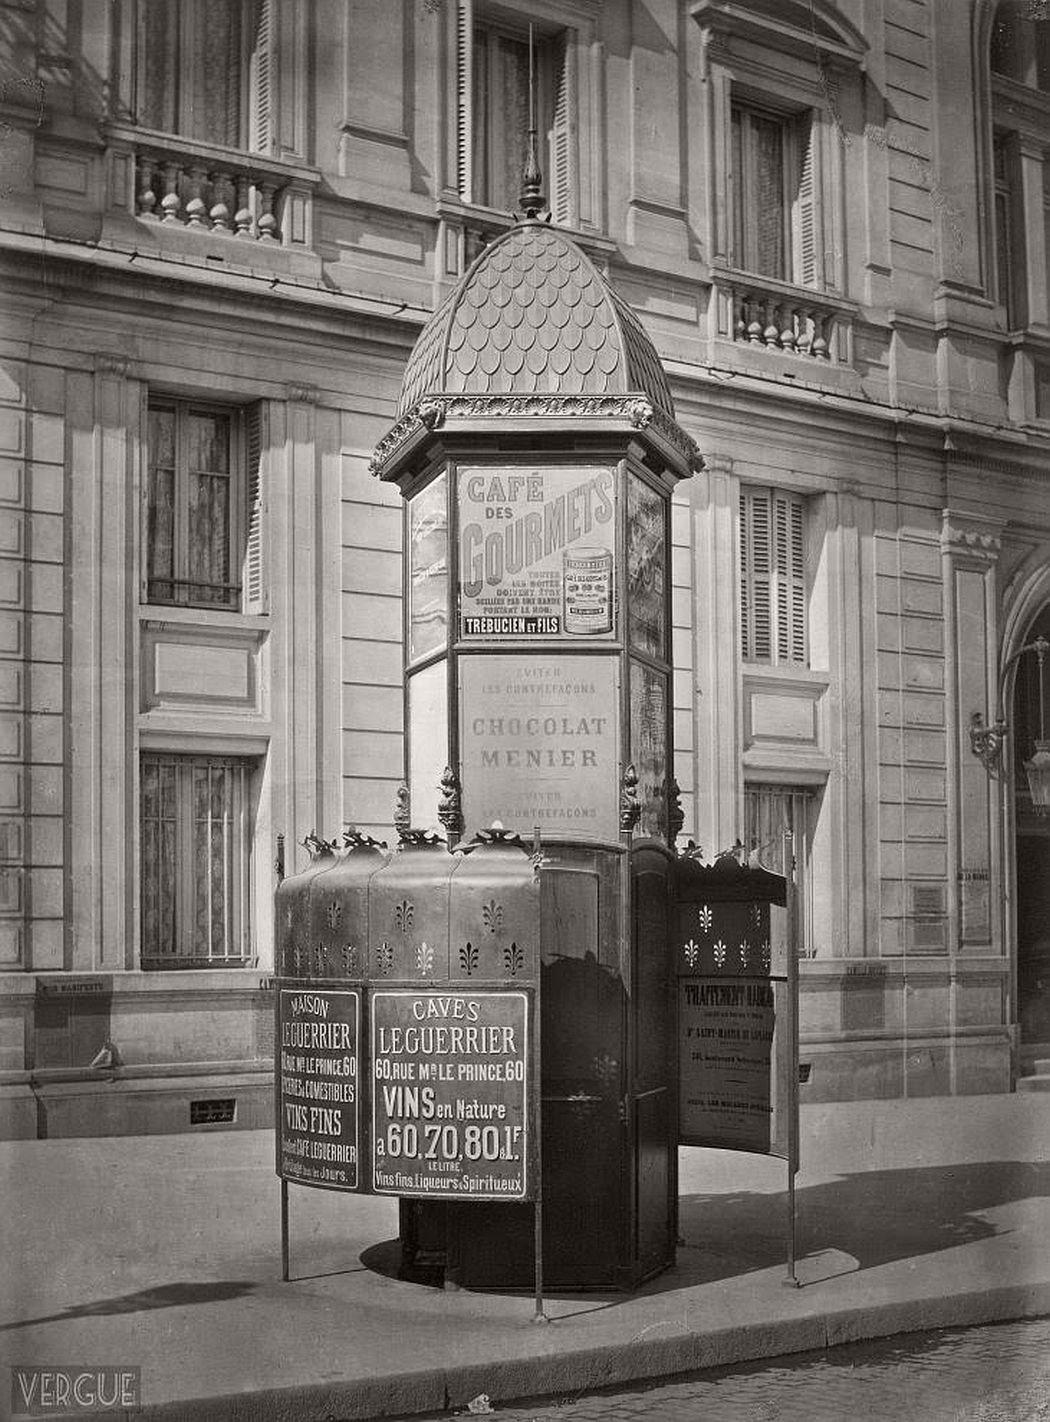 vintage-public-urinals-in-paris-by-charles-marville-19th-century-09